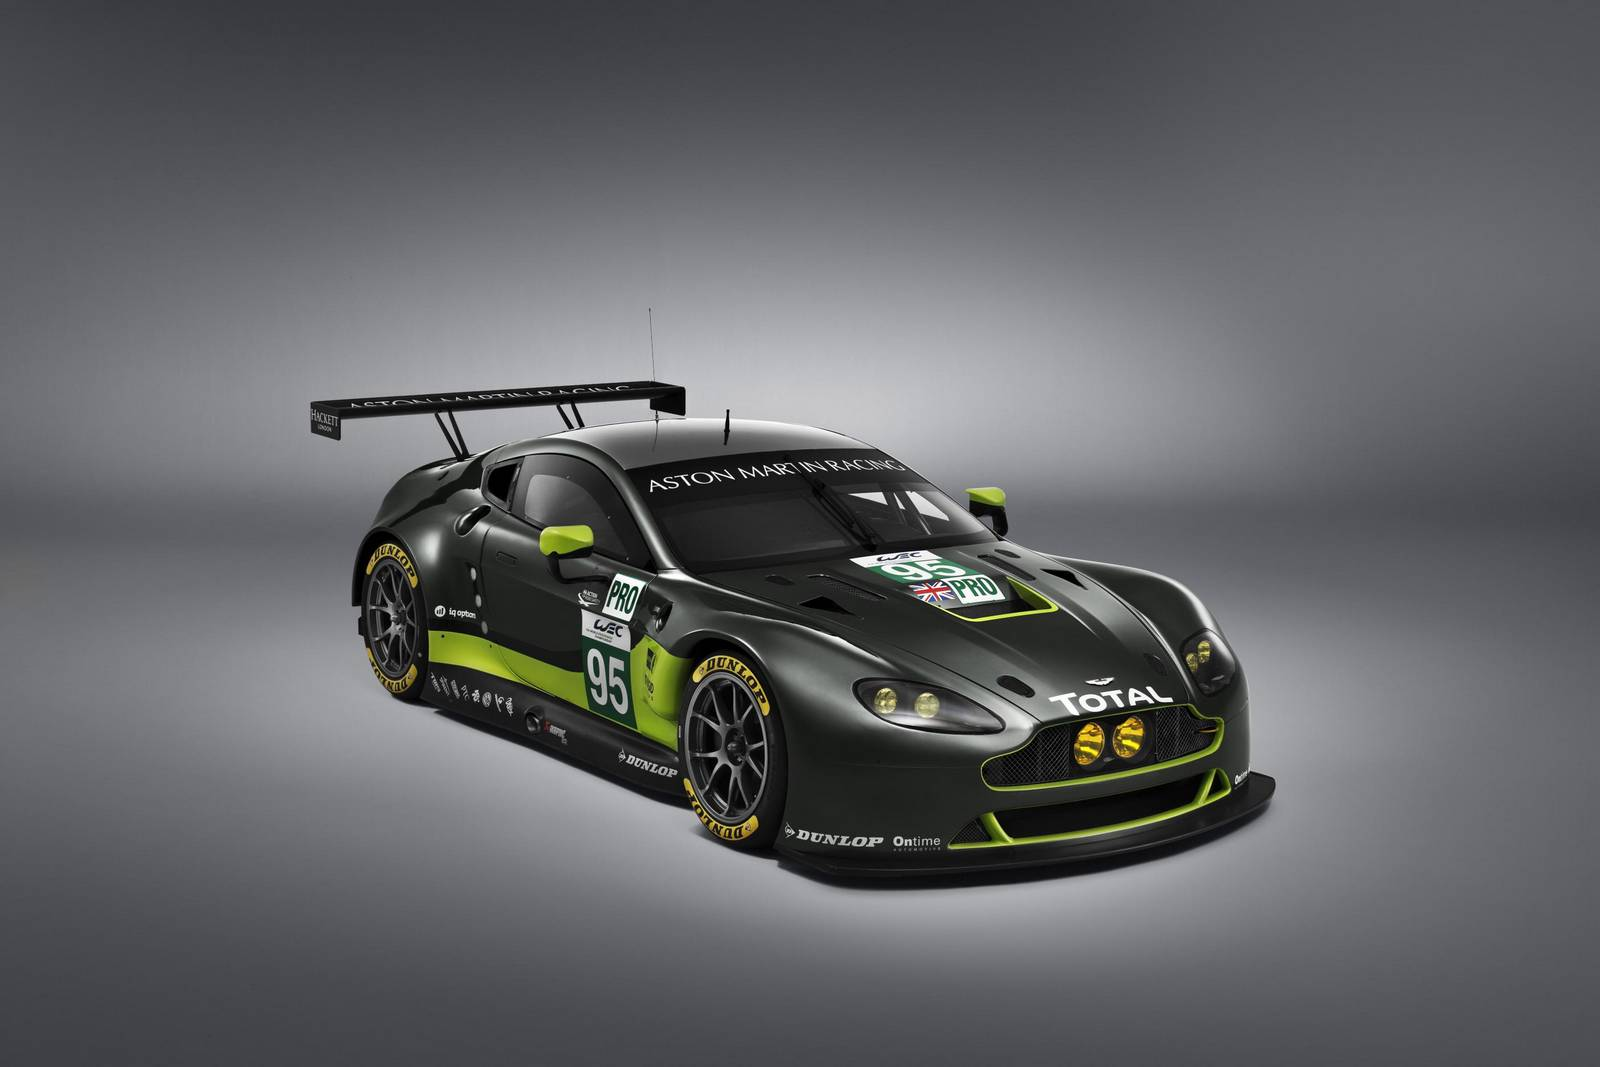 official: 2016 aston martin v8 vantage gte and v12 vantage gt3